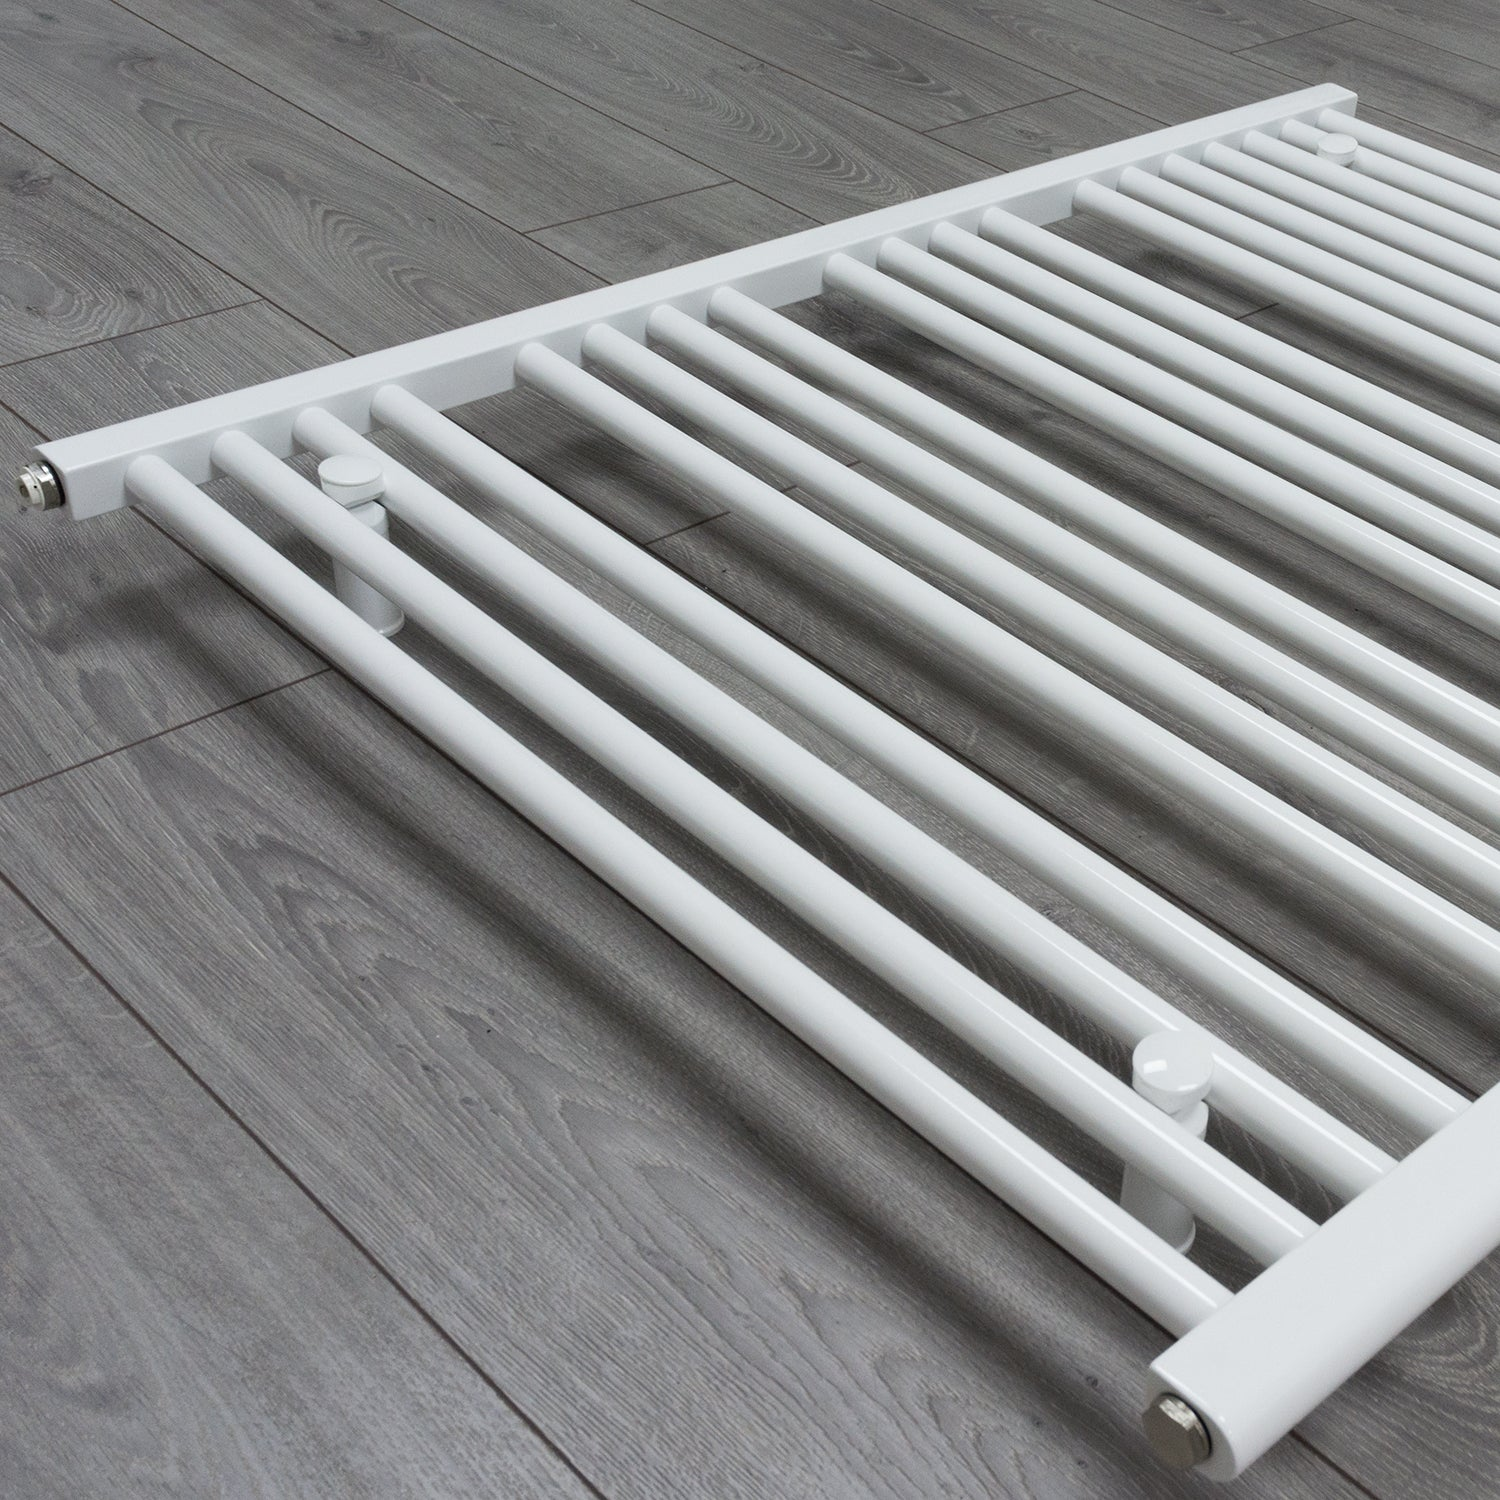 800mm x 1200mm White Heated Towel Rail Radiator Close Up Image